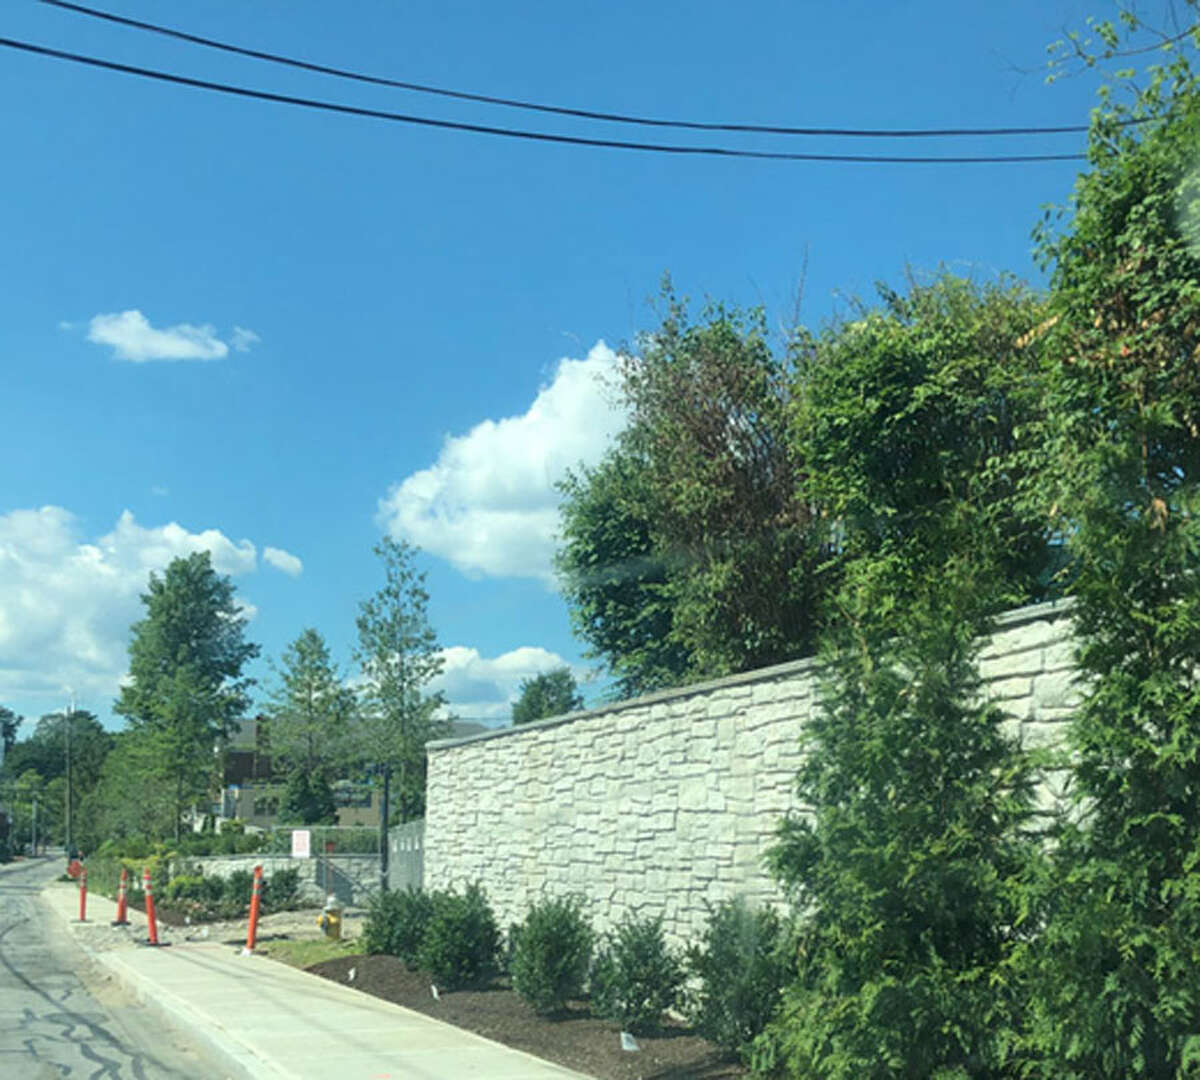 Trees, part of the planting plan to cover the faux stone walls at the Merritt Village construction project, were being put in midday Monday, June 24, 2019, in New Canaan, Connecticut. They're just enough to cover, and act as a barrier, helping the project fit more into the atmosphere of the town and not have it be a nuisance and an eyesore. Trees and other coverings, dividers and barriers are the name of the game, like they are between Grace Farms and neighbors properties. Easy solutions. Contributed photo